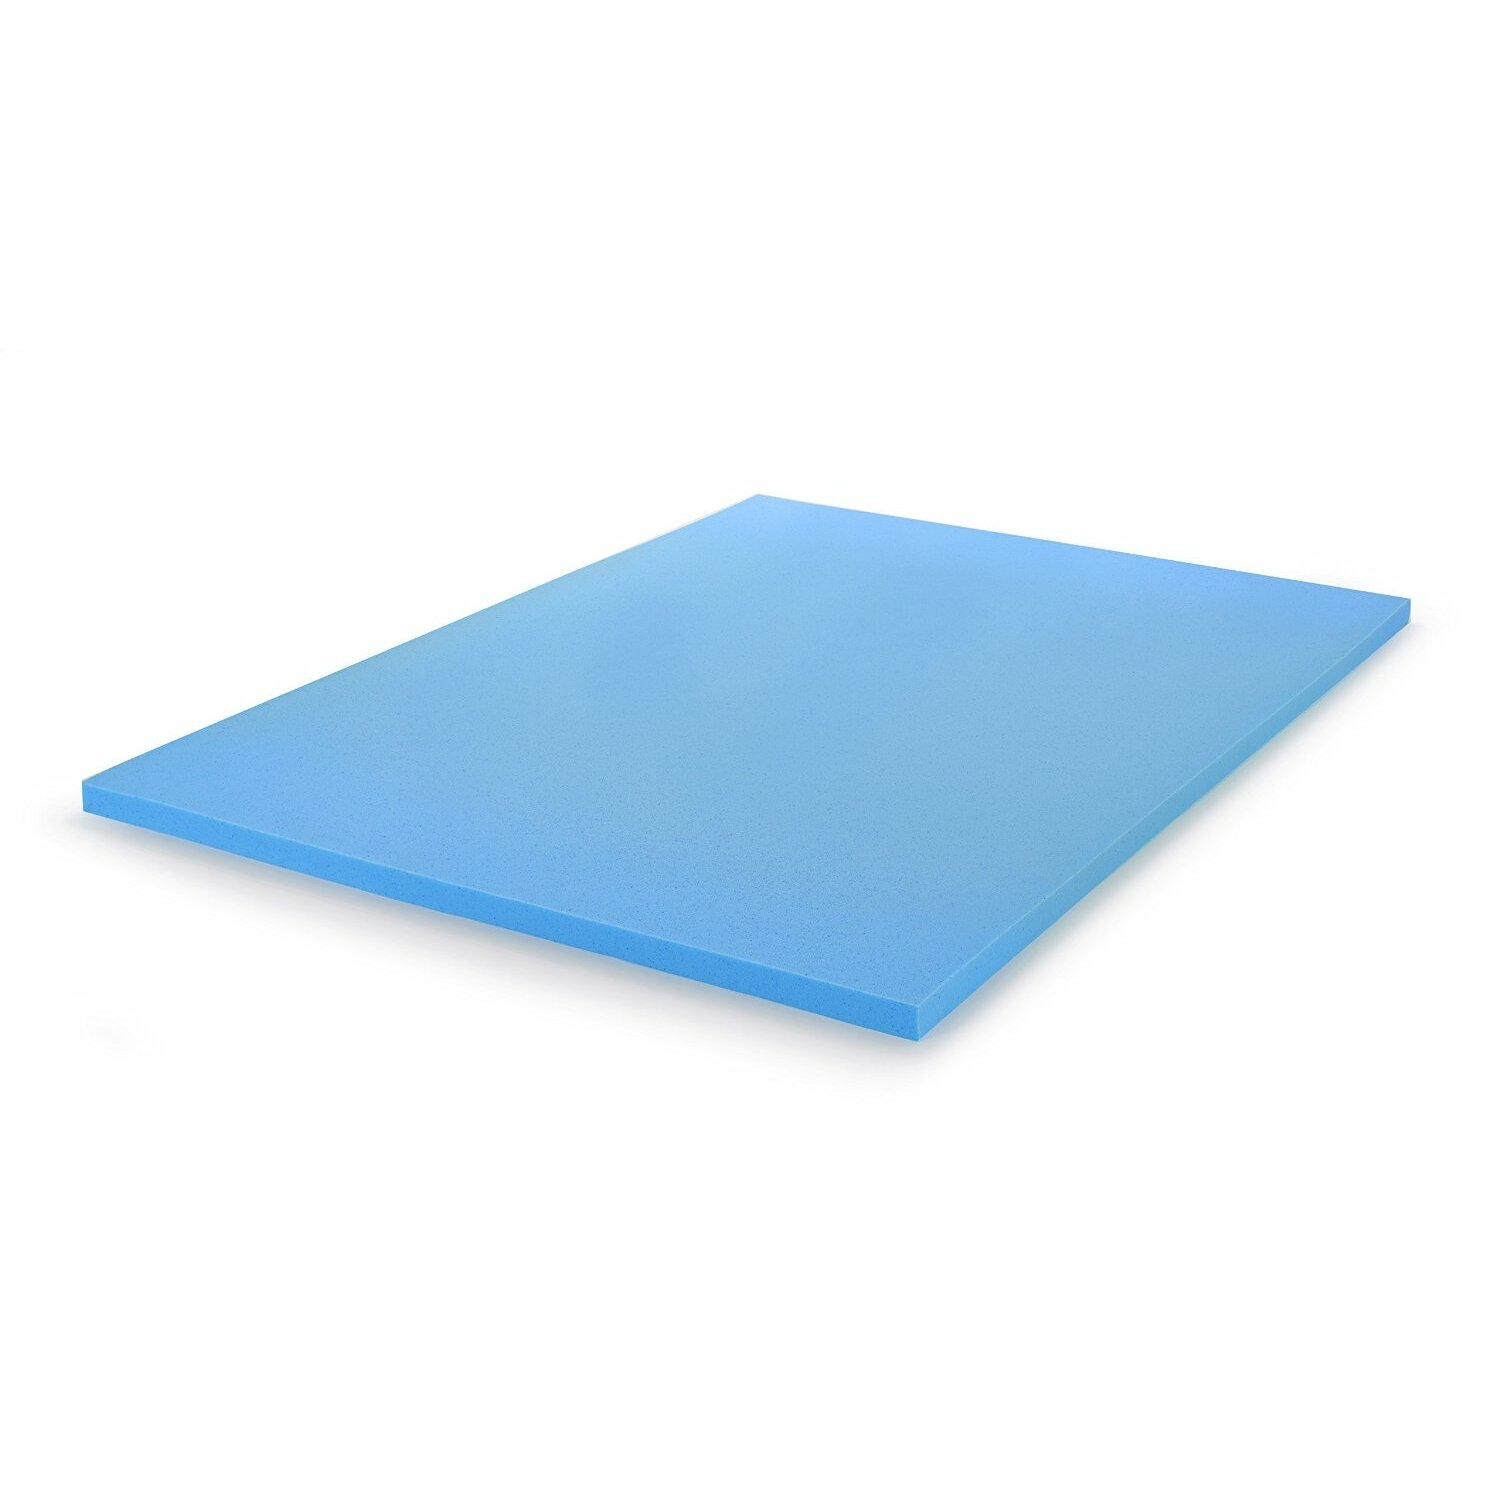 Viscosoft Gel Infused Memory Foam Mattress Topper